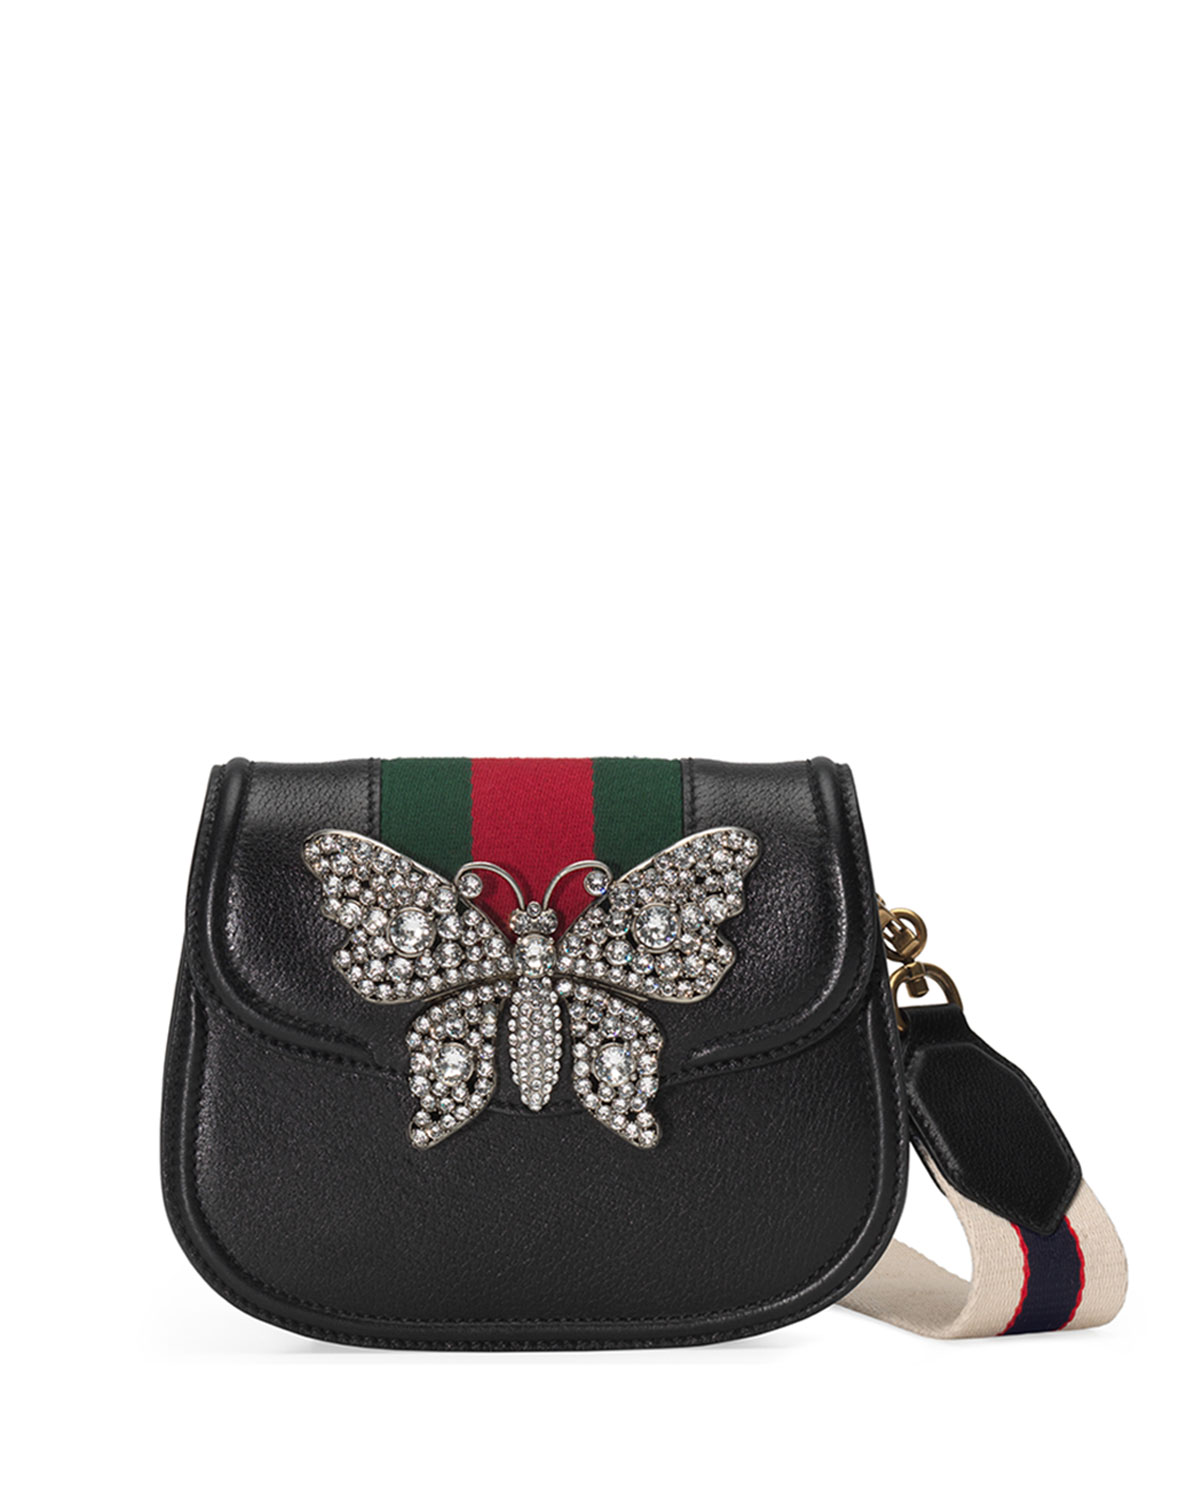 ffc2ff0673a Gucci Linea Totem Small Leather Shoulder Bag with Crystal Butterfly   Web  Strap